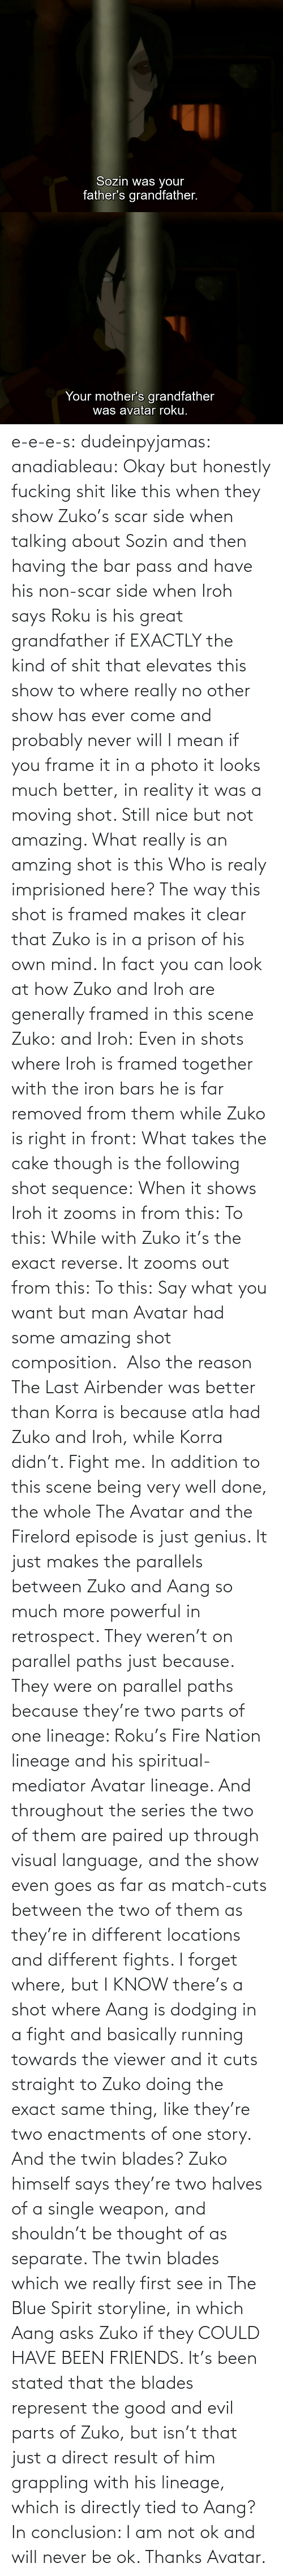 language: e-e-e-s: dudeinpyjamas:   anadiableau: Okay but honestly fucking shit like this when they show Zuko's scar side when talking about Sozin and then having the bar pass and have his non-scar side when Iroh says Roku is his great grandfather if EXACTLY the kind of shit that elevates this show to where really no other show has ever come and probably never will I mean if you frame it in a photo it looks much better, in reality it was a moving shot. Still nice but not amazing. What really is an amzing shot is this Who is realy imprisioned here? The way this shot is framed makes it clear that Zuko is in a prison of his own mind. In fact you can look at how Zuko and Iroh are generally framed in this scene Zuko: and Iroh: Even in shots where Iroh is framed together with the iron bars he is far removed from them while Zuko is right in front:  What takes the cake though is the following shot sequence: When it shows Iroh it zooms in from this: To this: While with Zuko it's the exact reverse. It zooms out from this: To this: Say what you want but man Avatar had some amazing shot composition.   Also the reason The Last Airbender was better than Korra is because atla had Zuko and Iroh, while Korra didn't. Fight me.    In addition to this scene being very well done, the whole The Avatar and the Firelord episode is just genius.  It just makes the parallels between Zuko and Aang so much more powerful in retrospect.  They weren't on parallel paths just because.  They were on parallel paths because they're two parts of one lineage: Roku's Fire Nation lineage and his spiritual-mediator Avatar lineage.  And throughout the series the two of them are paired up through visual language, and the show even goes as far as match-cuts between the two of them as they're in different locations and different fights.  I forget where, but I KNOW there's a shot where Aang is dodging in a fight and basically running towards the viewer and it cuts straight to Zuko doing the exact same thing, like they're two enactments of one story.   And the twin blades?  Zuko himself says they're two halves of a single weapon, and shouldn't be thought of as separate.  The twin blades which we really first see in The Blue Spirit storyline, in which Aang asks Zuko if they COULD HAVE BEEN FRIENDS.  It's been stated that the blades represent the good and evil parts of Zuko, but isn't that just a direct result of him grappling with his lineage, which is directly tied to Aang? In conclusion: I am not ok and will never be ok.  Thanks Avatar.